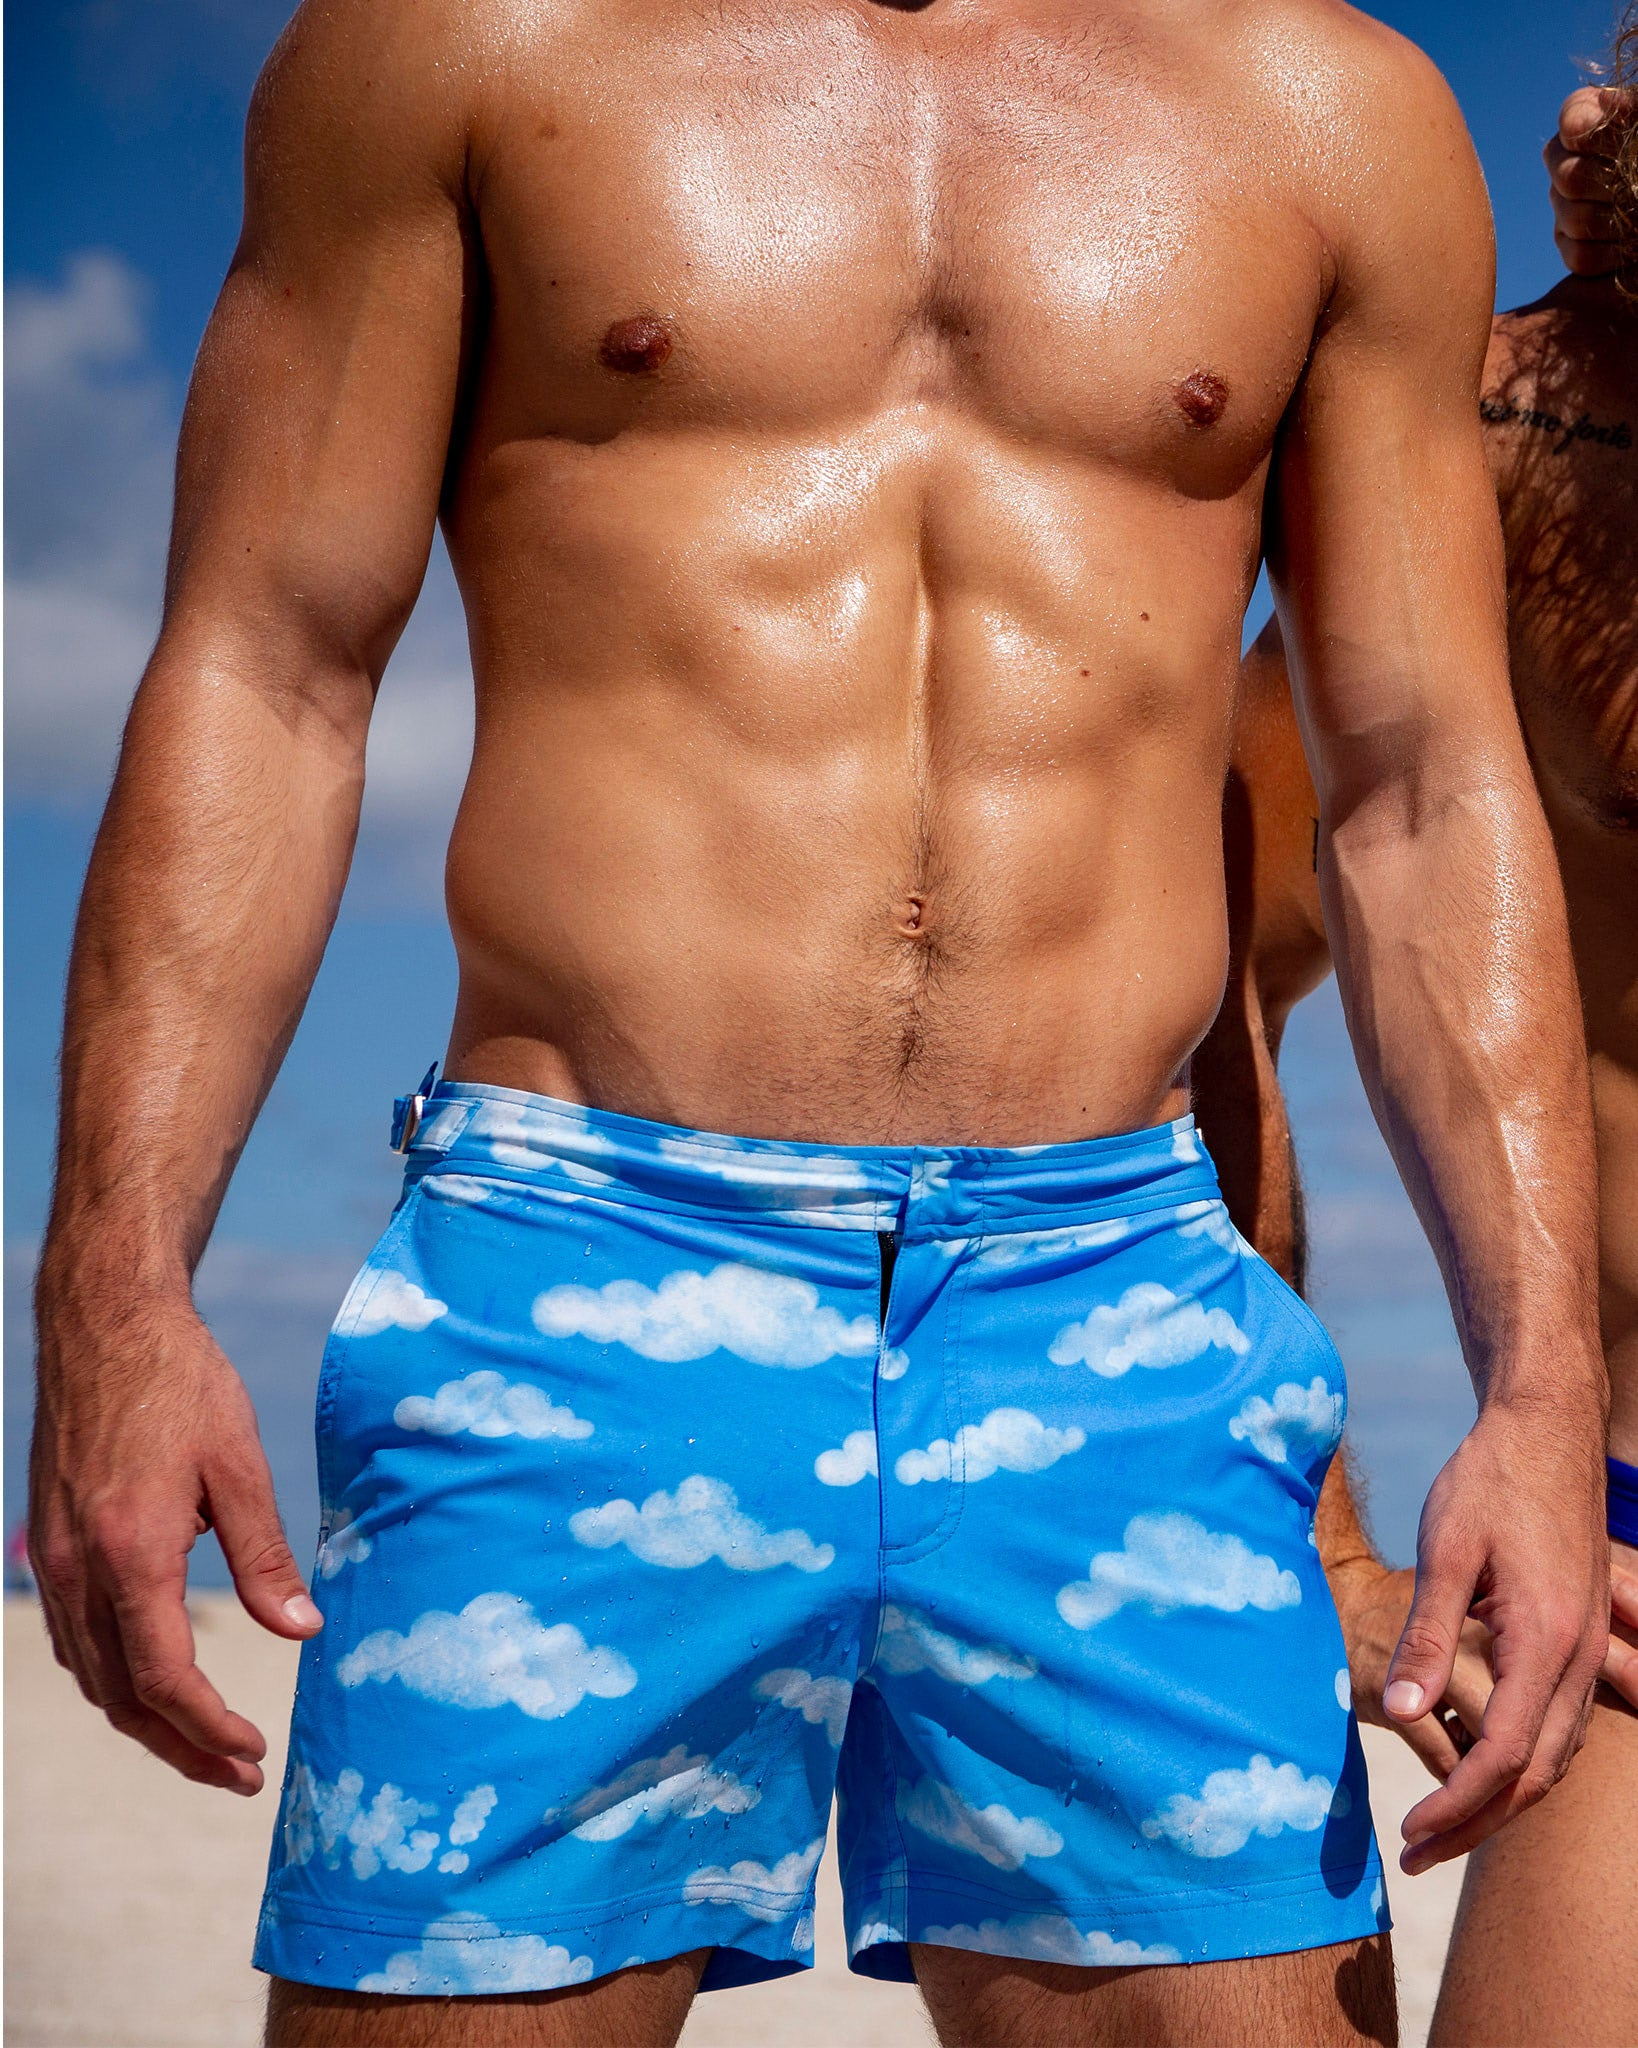 ABOVE THE CLOUDS Tailored Shorts Bang Clothes Men Swimwear Swimsuits editorial